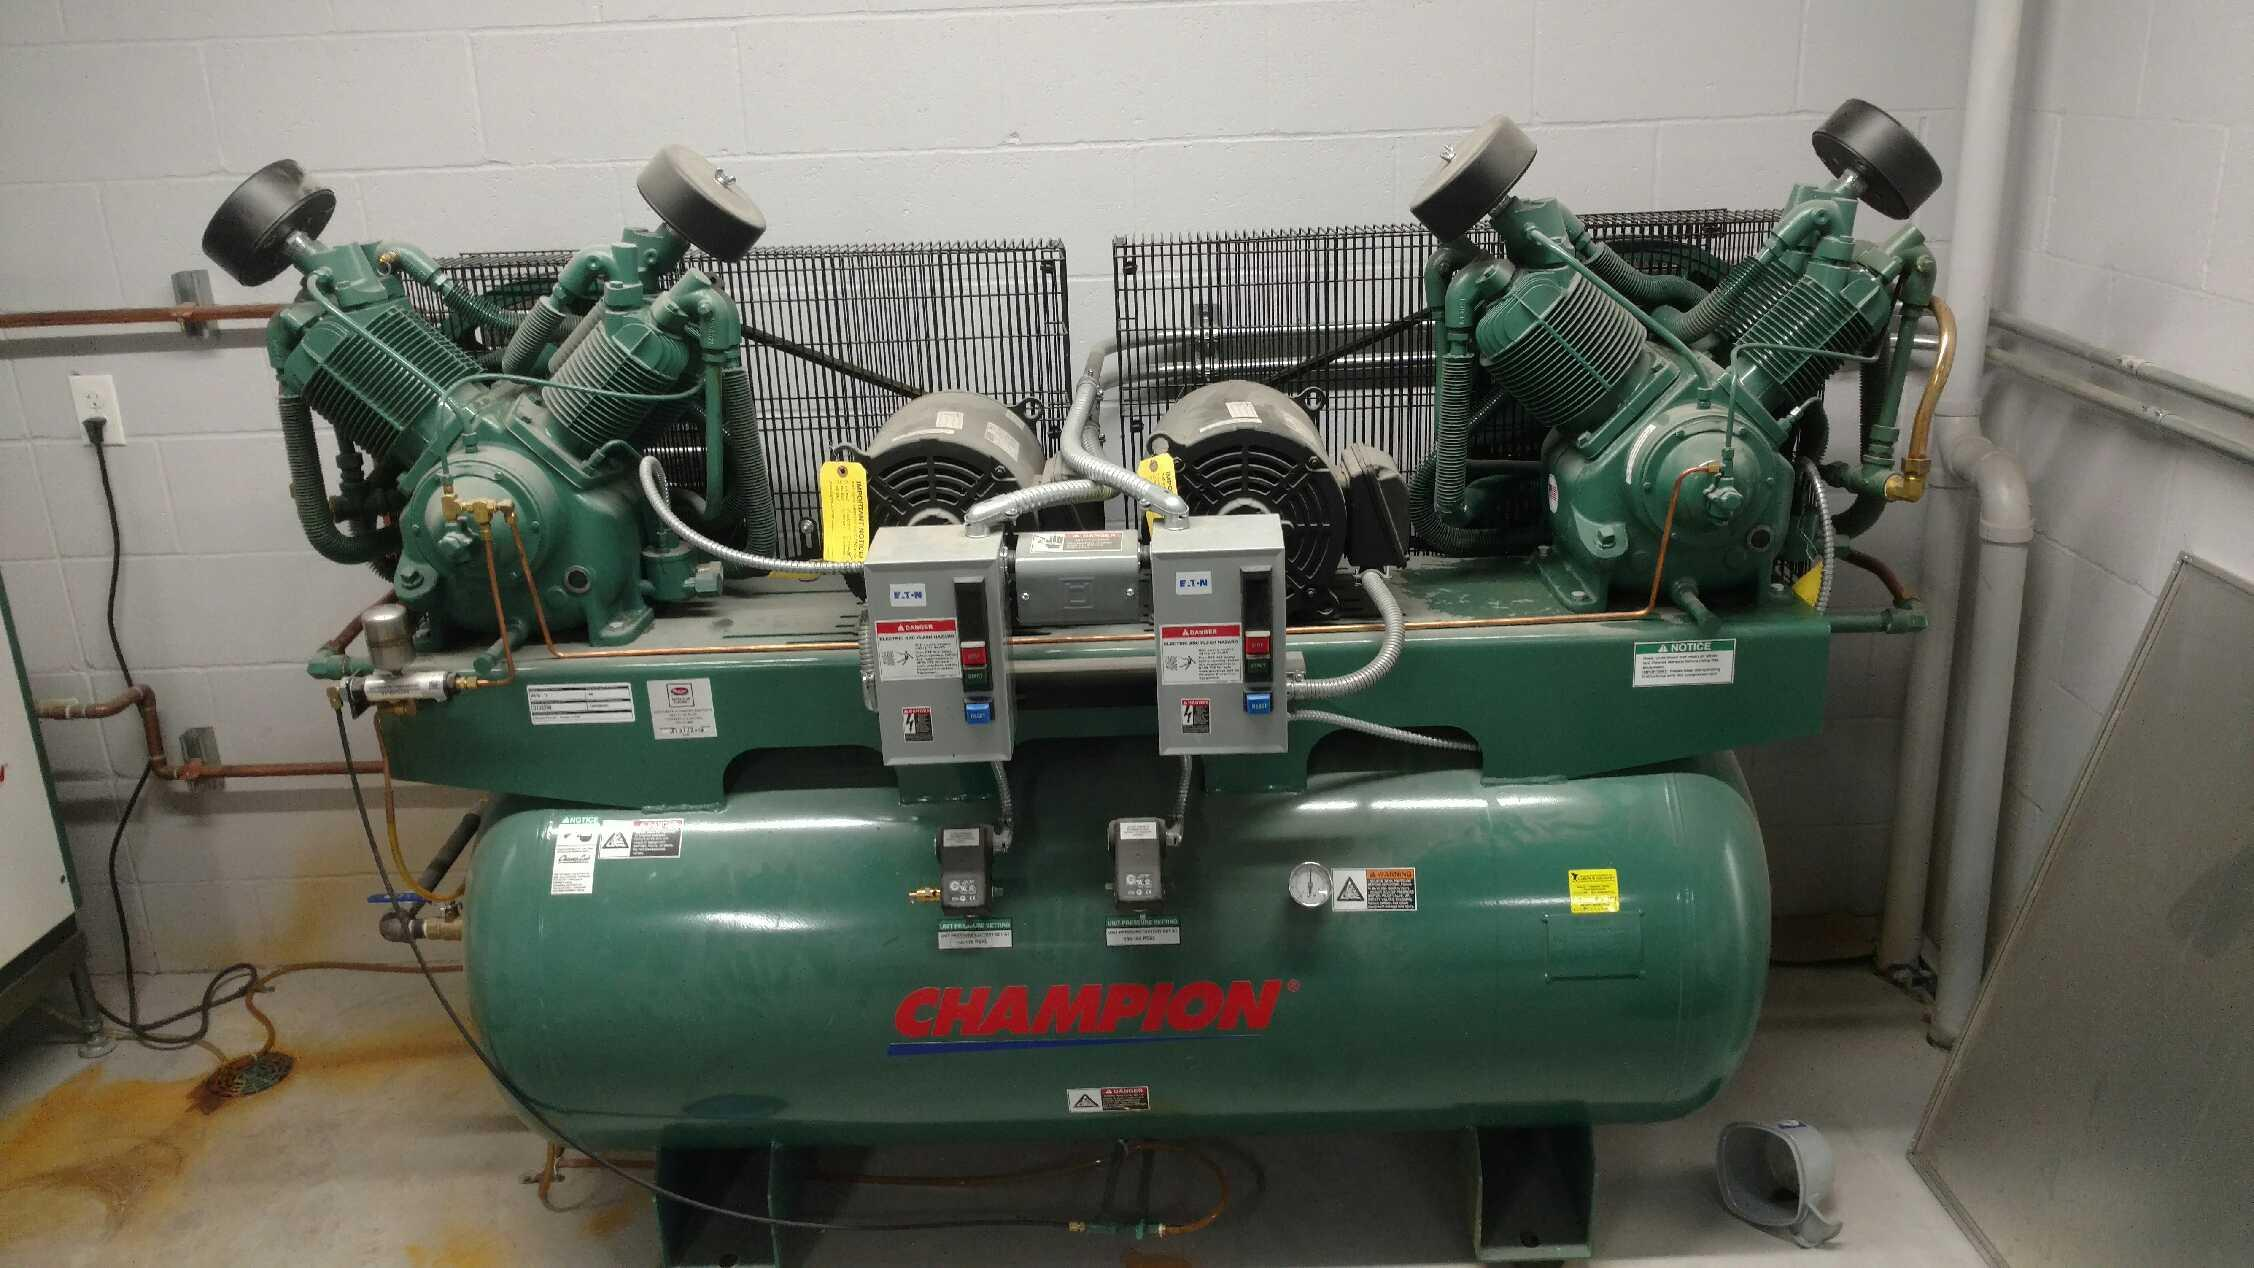 Oil Tanks And Compressor Installed At Dahl Chevrolet In